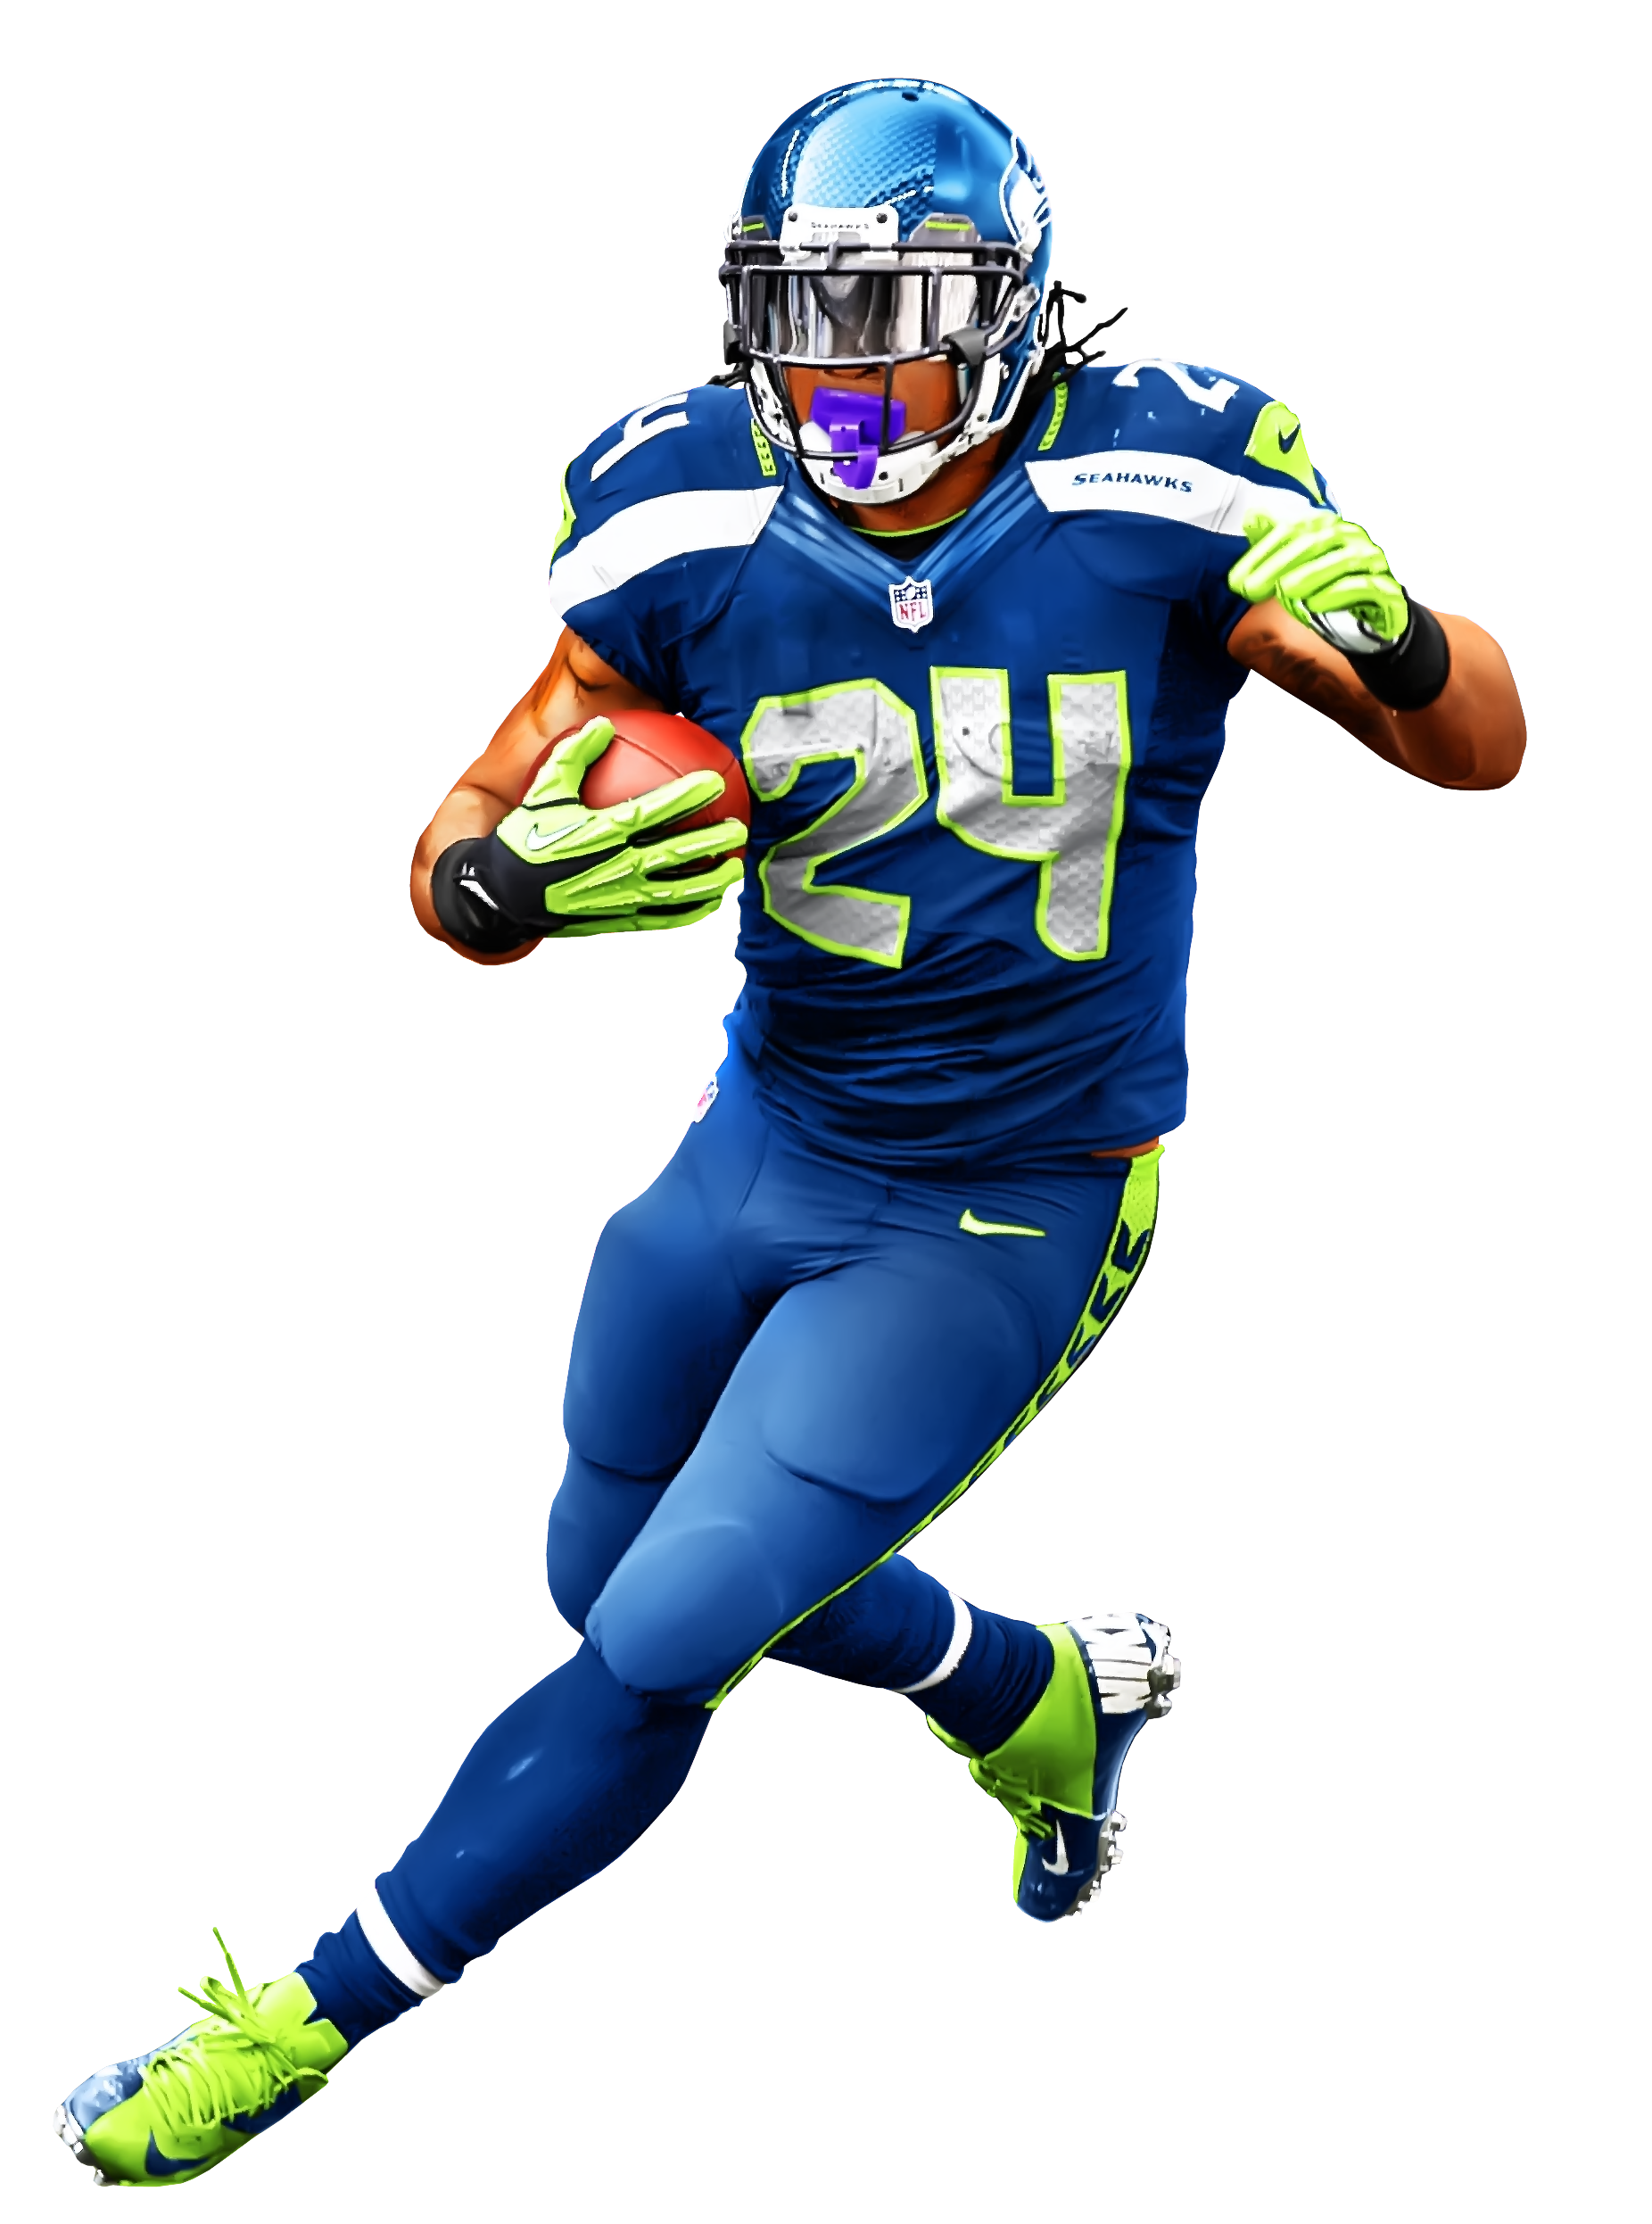 American png image purepng. Muscle clipart football player